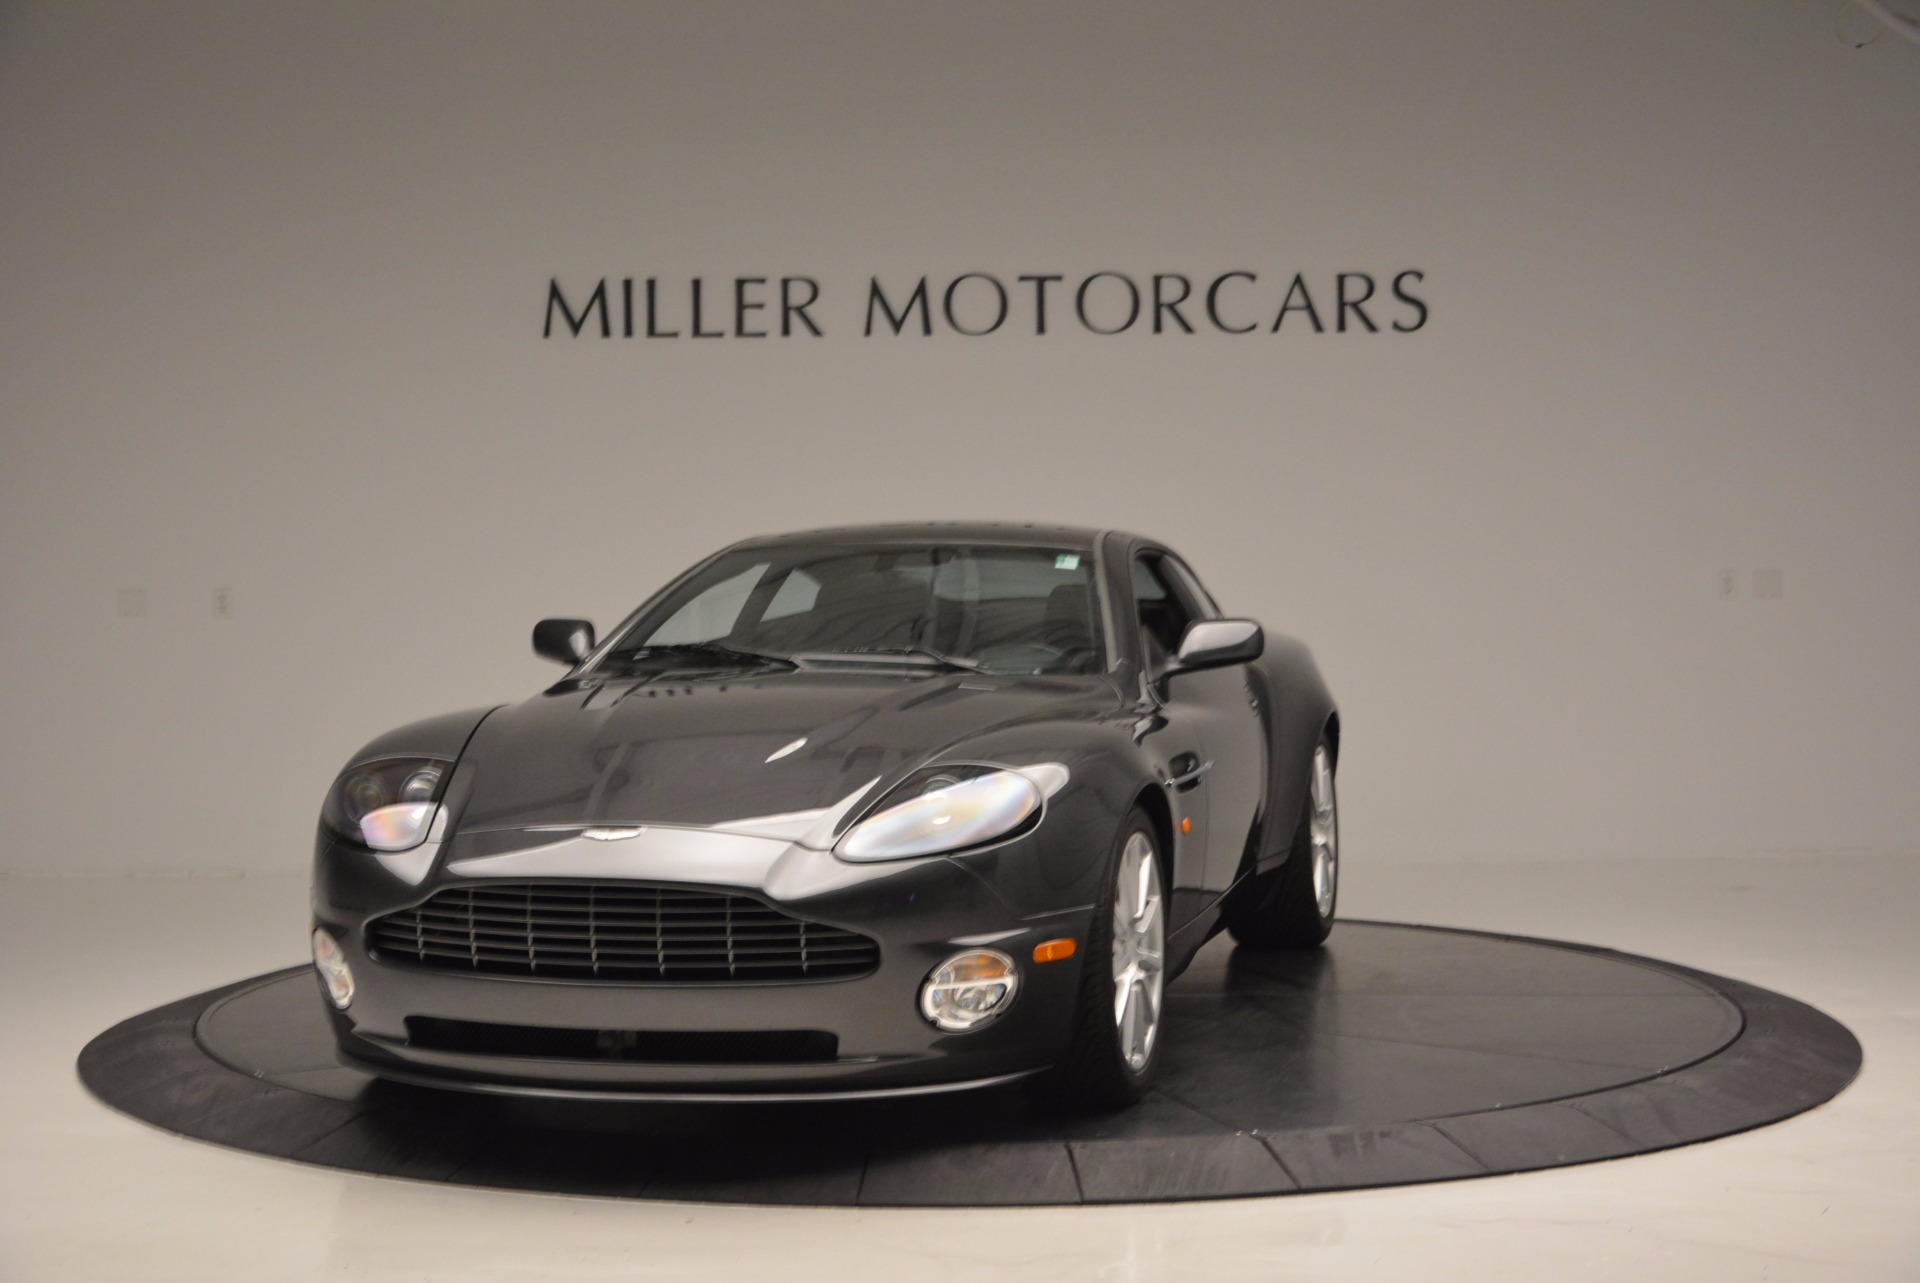 Used 2005 Aston Martin V12 Vanquish S for sale Sold at Bugatti of Greenwich in Greenwich CT 06830 1